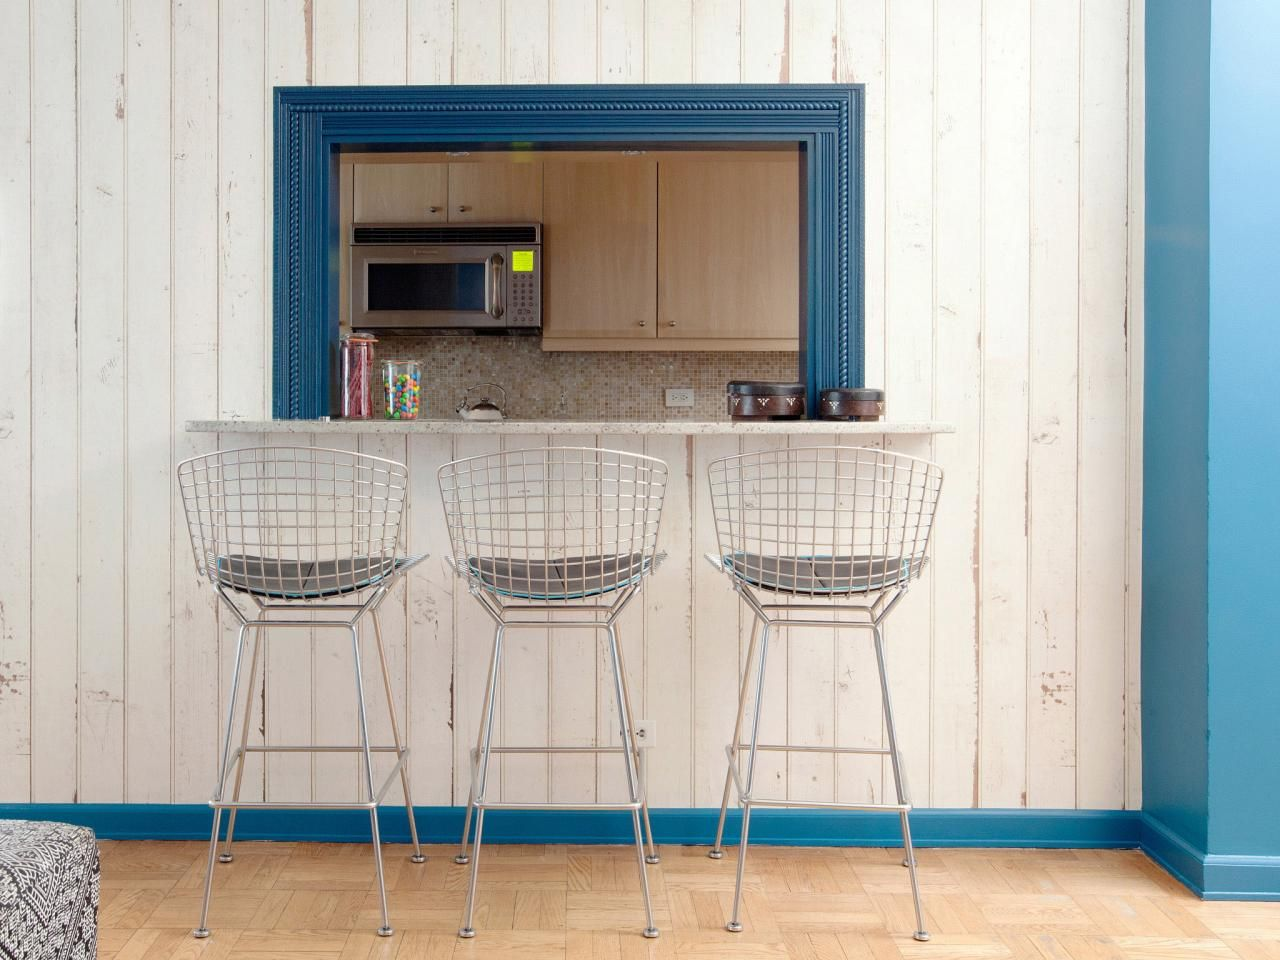 Vintage Metal Barstools Sit In Front A Pass Through From The Living Room To Kitchen